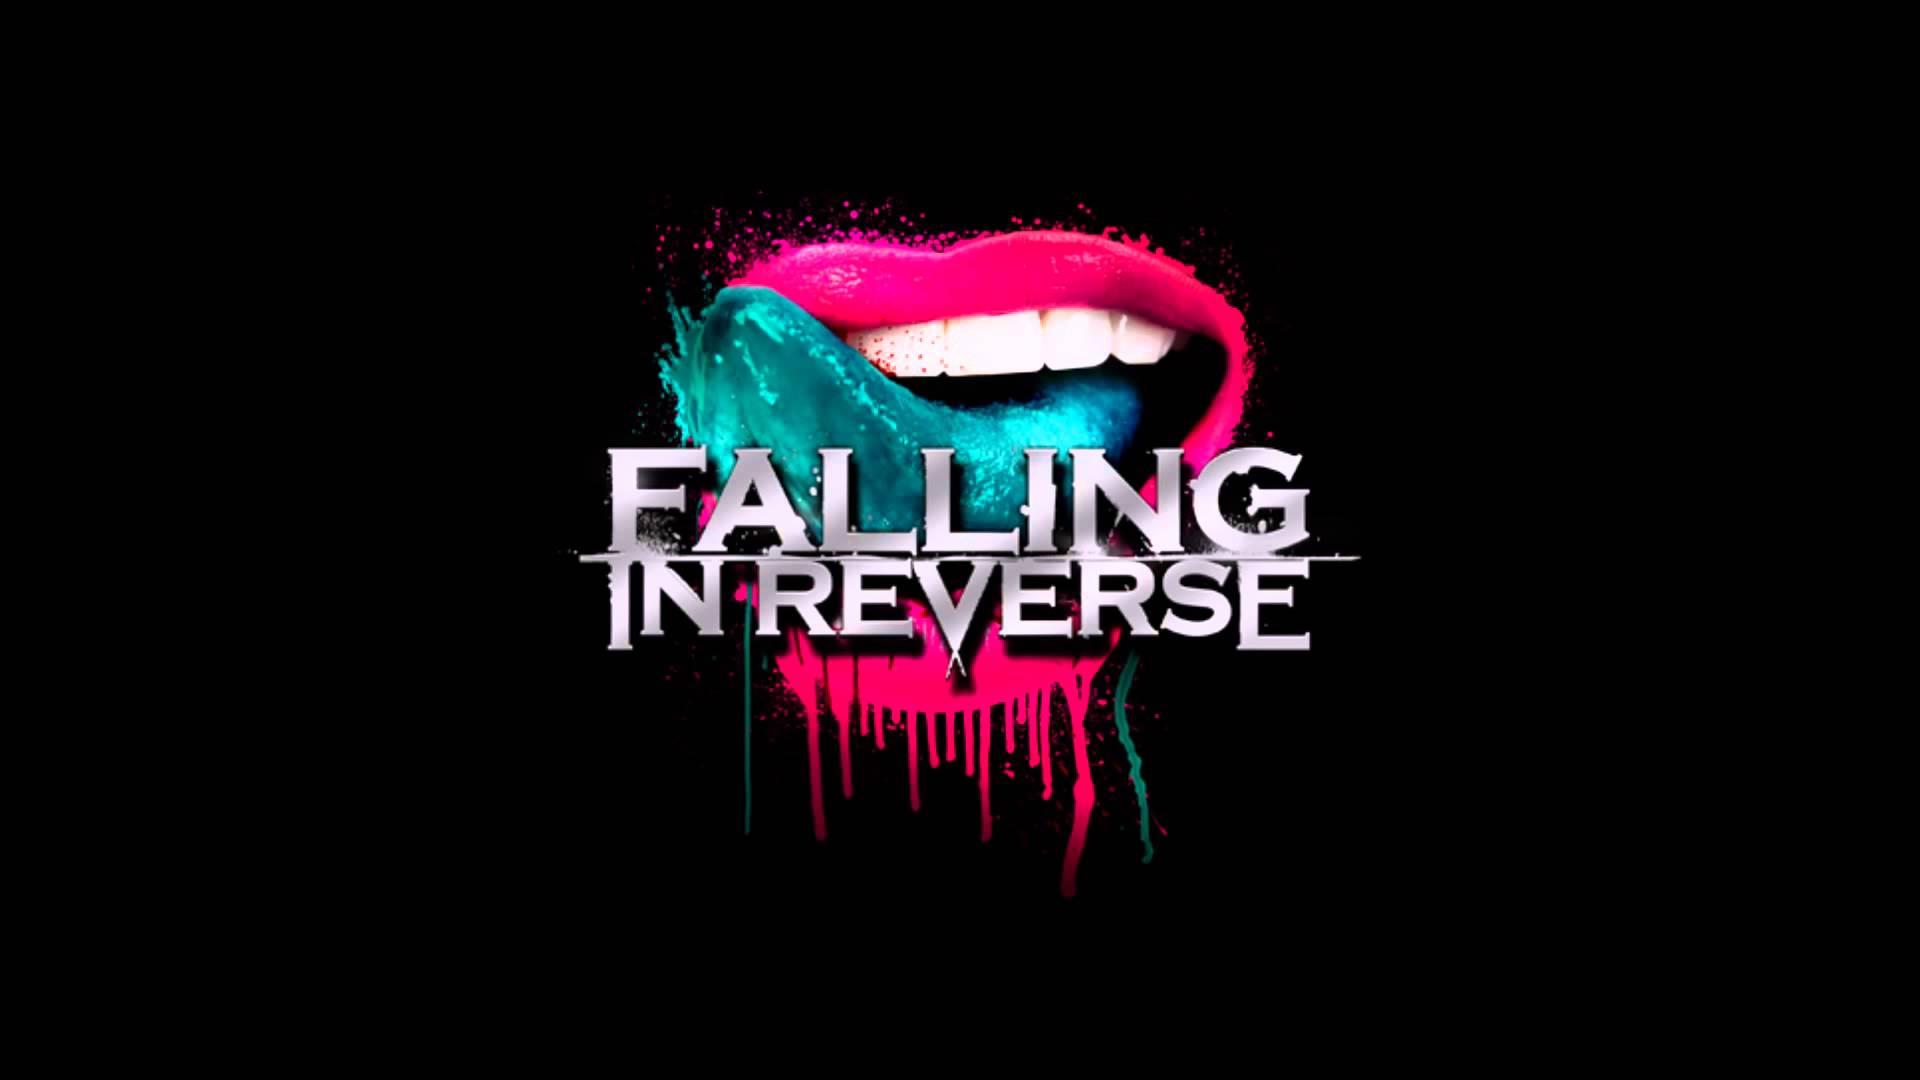 Falling In Reverse Wallpaper Falling In Reverse Wallpapers